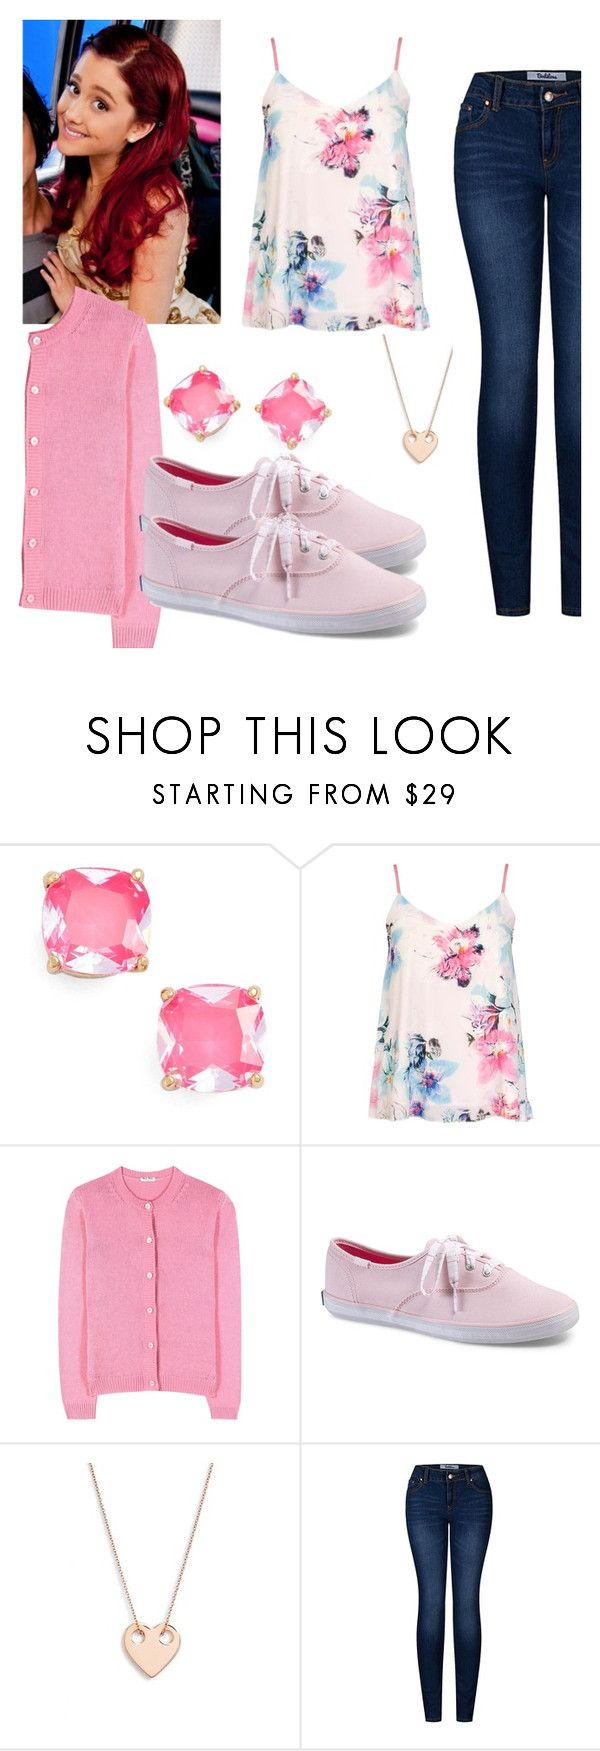 """Cat Valentine (Victorious) Inspired Outfit"" by desiremeb ❤ liked on Polyvore featuring Kate Spade, Dorothy Perkins, Miu Miu, Keds, Ginette NY, 2LUV, ArianaGrande, Victorious, CatValentine and SamAndCat"